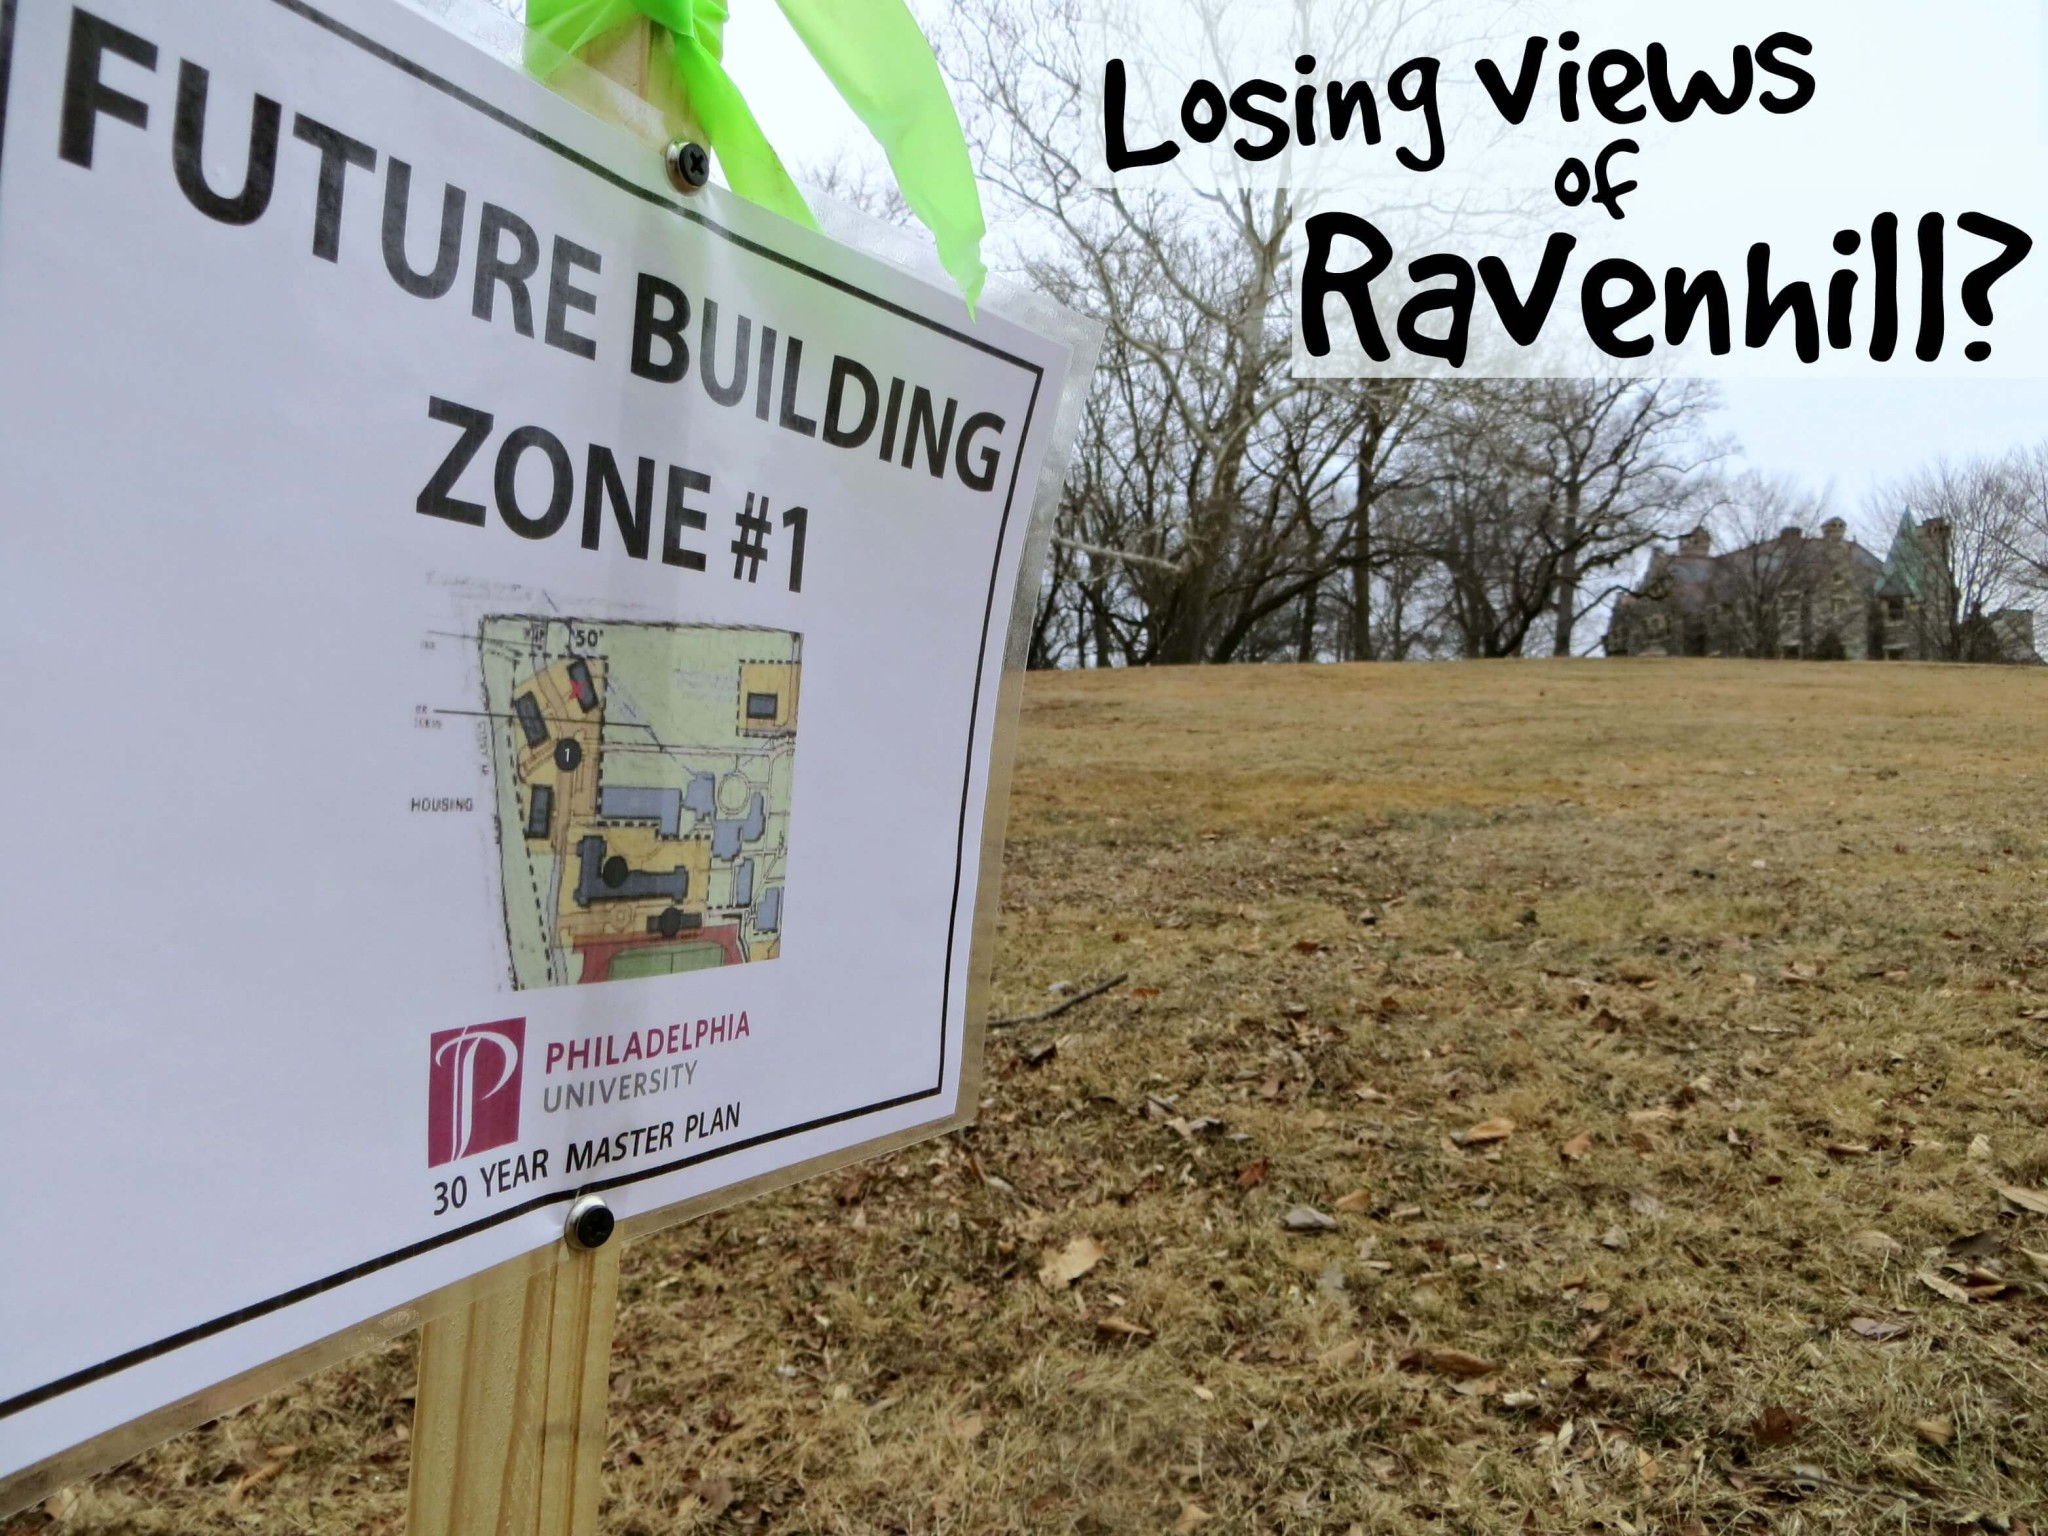 Future site #1 New homes SIGN 50 feet setback corner survey SIGN RAVENHILL losing views text